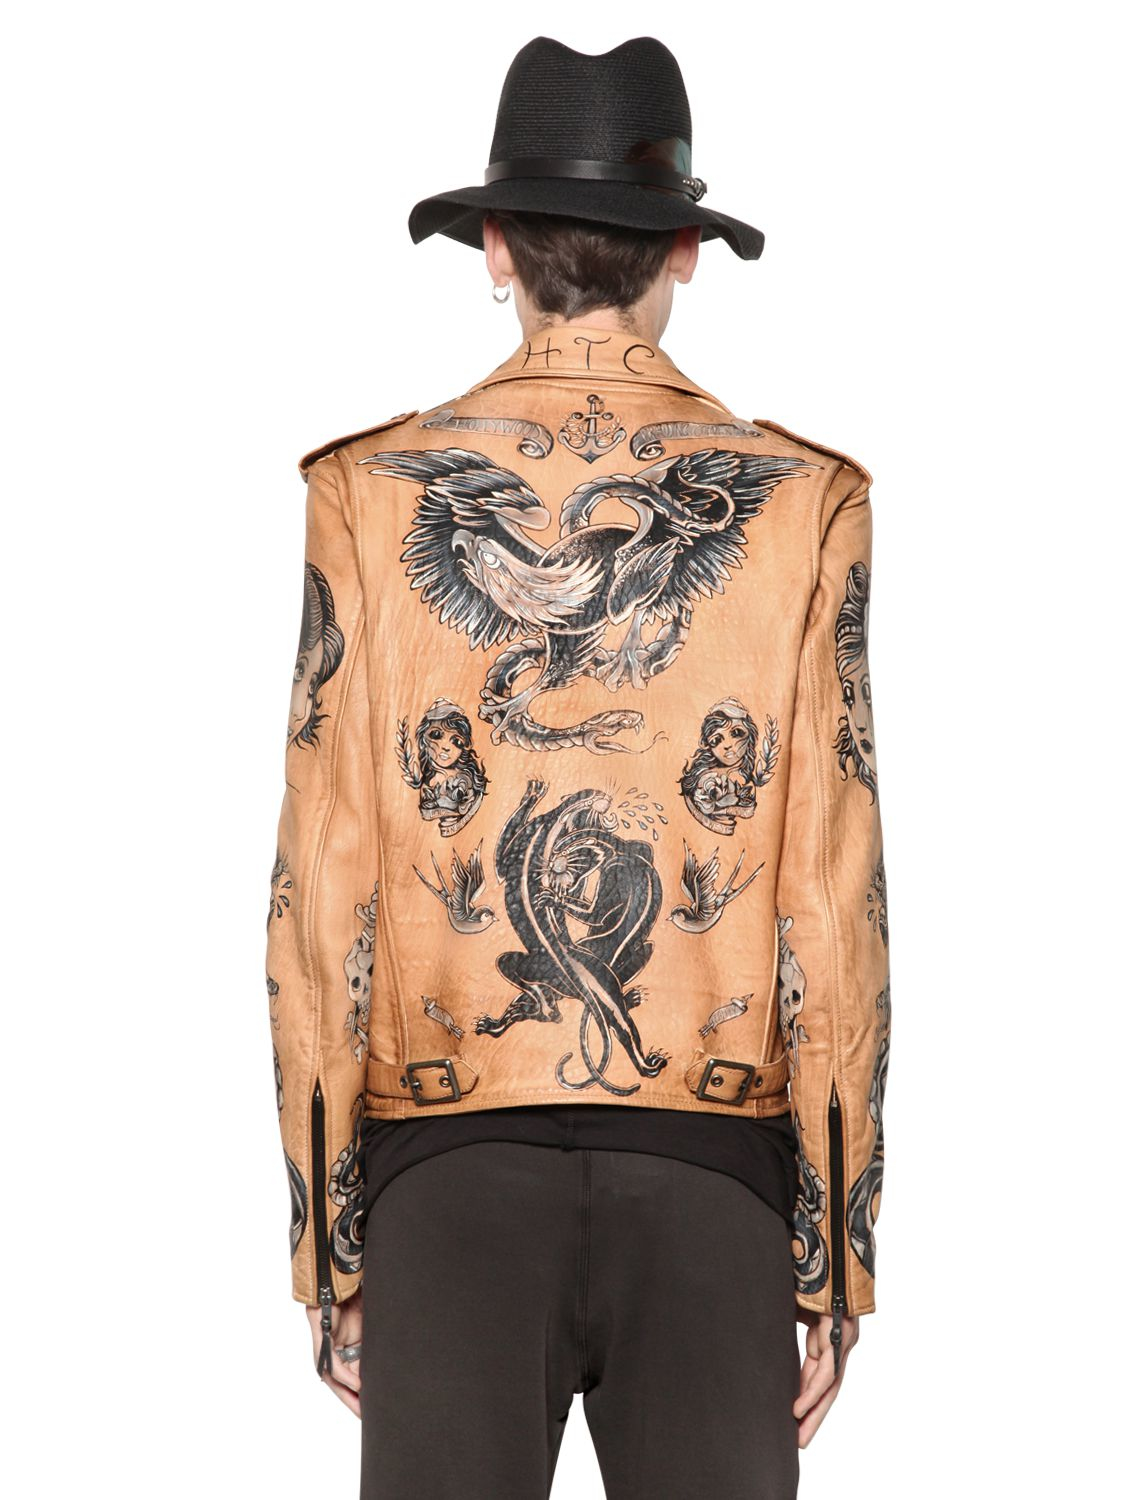 HTC Hollywood Trading Company Hand-painted Tattoo Nappa Leather ...